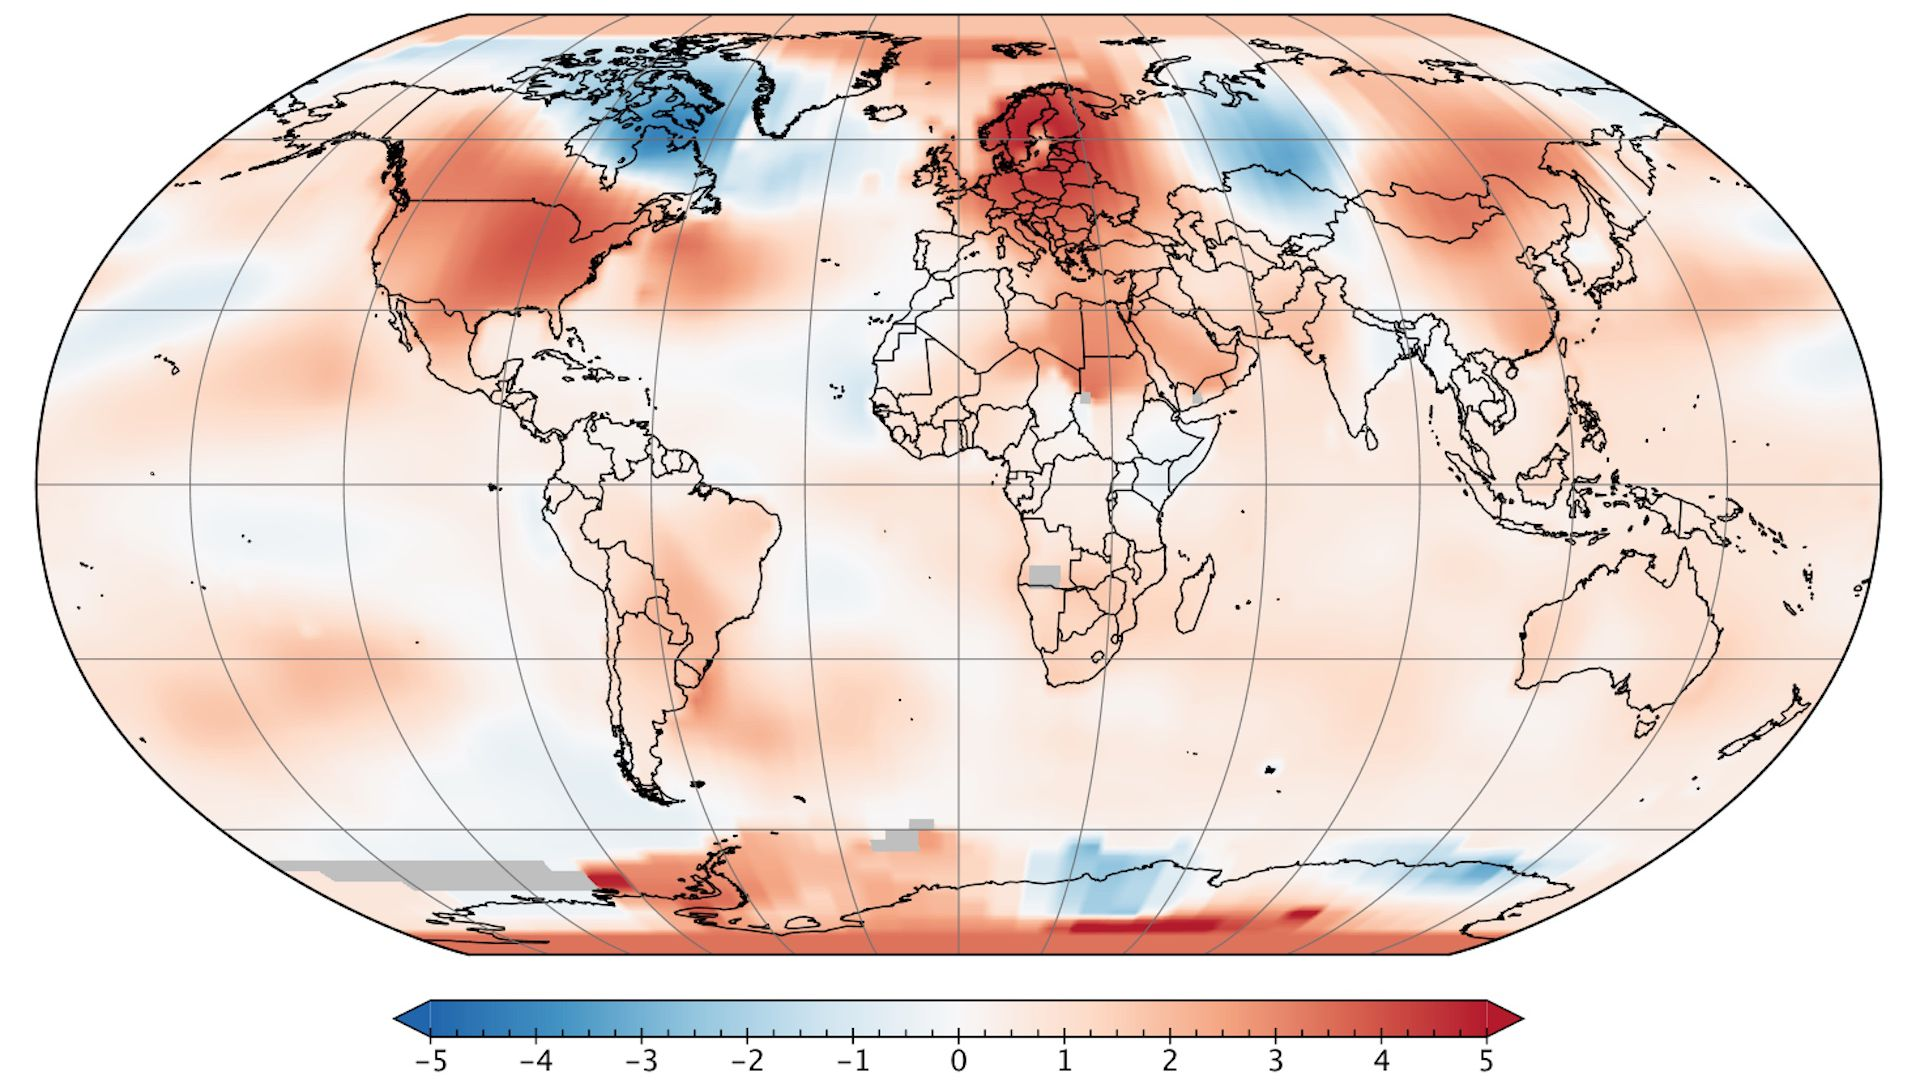 Map showing temperature anomalies during the month of May 2018.